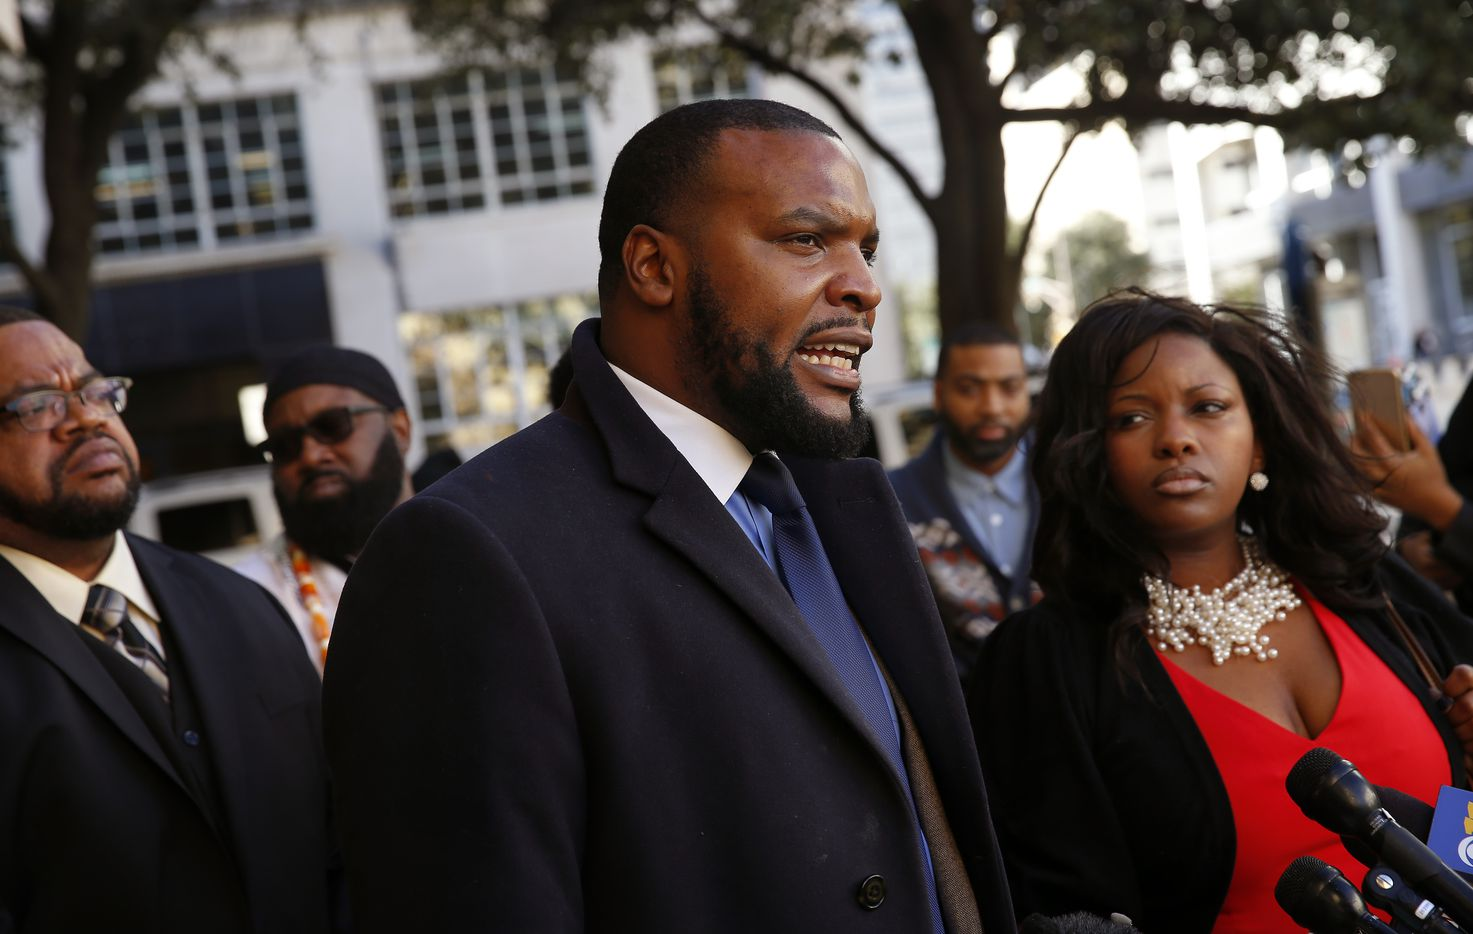 Craig family attorney Lee Merritt speaks at a press conference outside Fort Worth City Halas he was joined by religious leaders and a family member following Fort Worth Chief Joel Fitzgerald's decision to to suspend his officer for 10 days.  (Tom Fox/The Dallas Morning News)